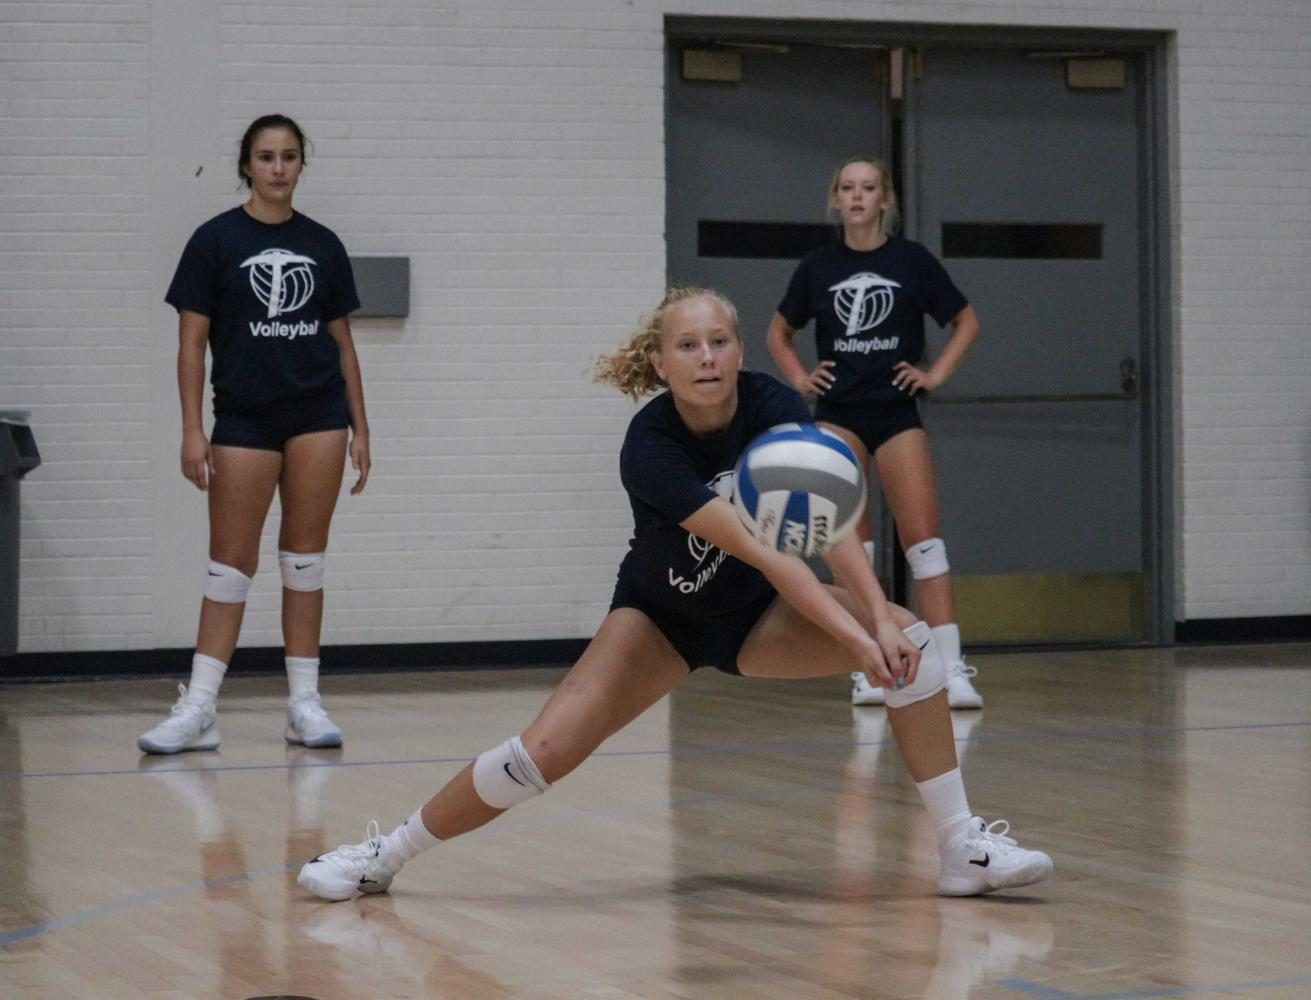 UTEP+women%27s+volleyball+players+practiced+a+variety+of+drills+to+improve+and+sharpen+their+skills.